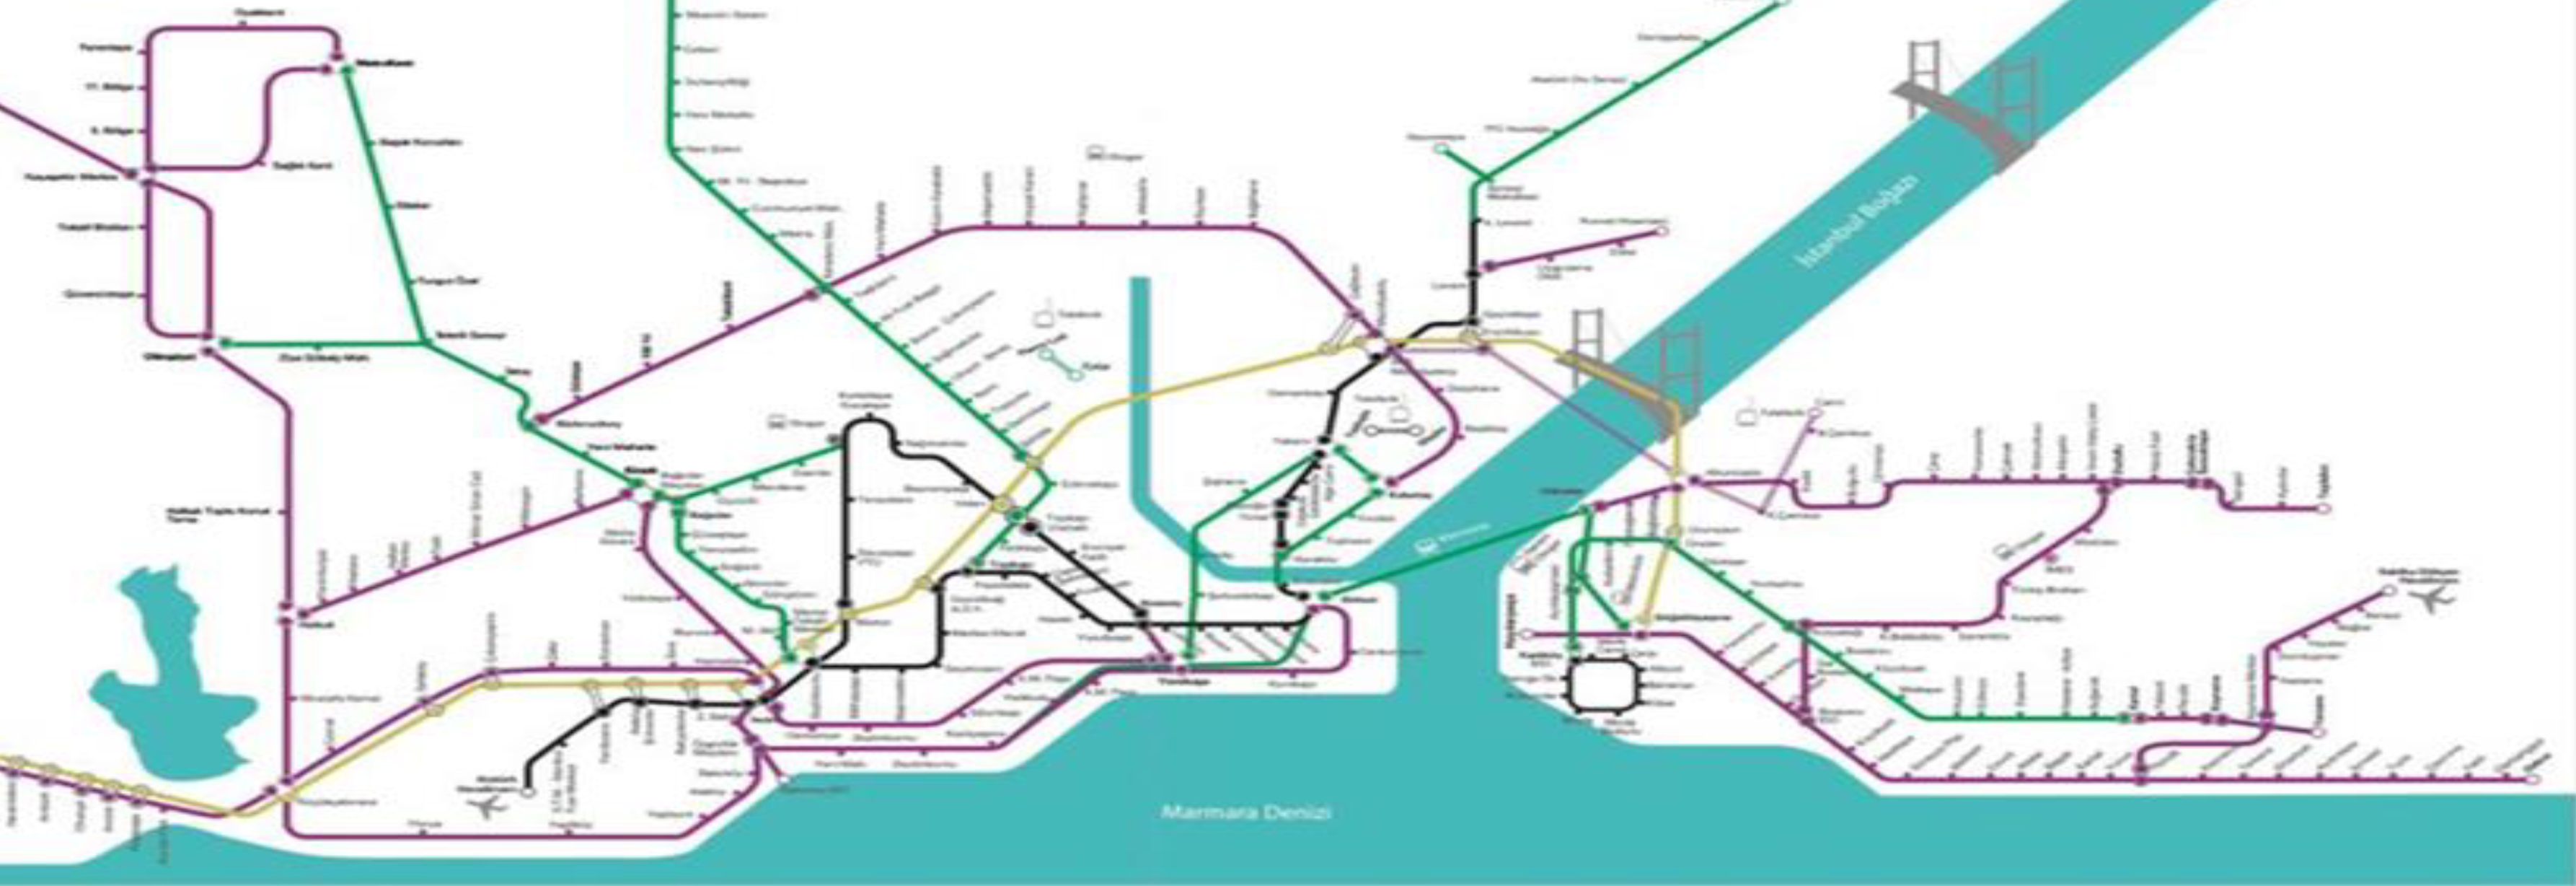 Istanbul Subway Map 2015.Istanbul Smart Designed Metro Lines Road Maps For Energy